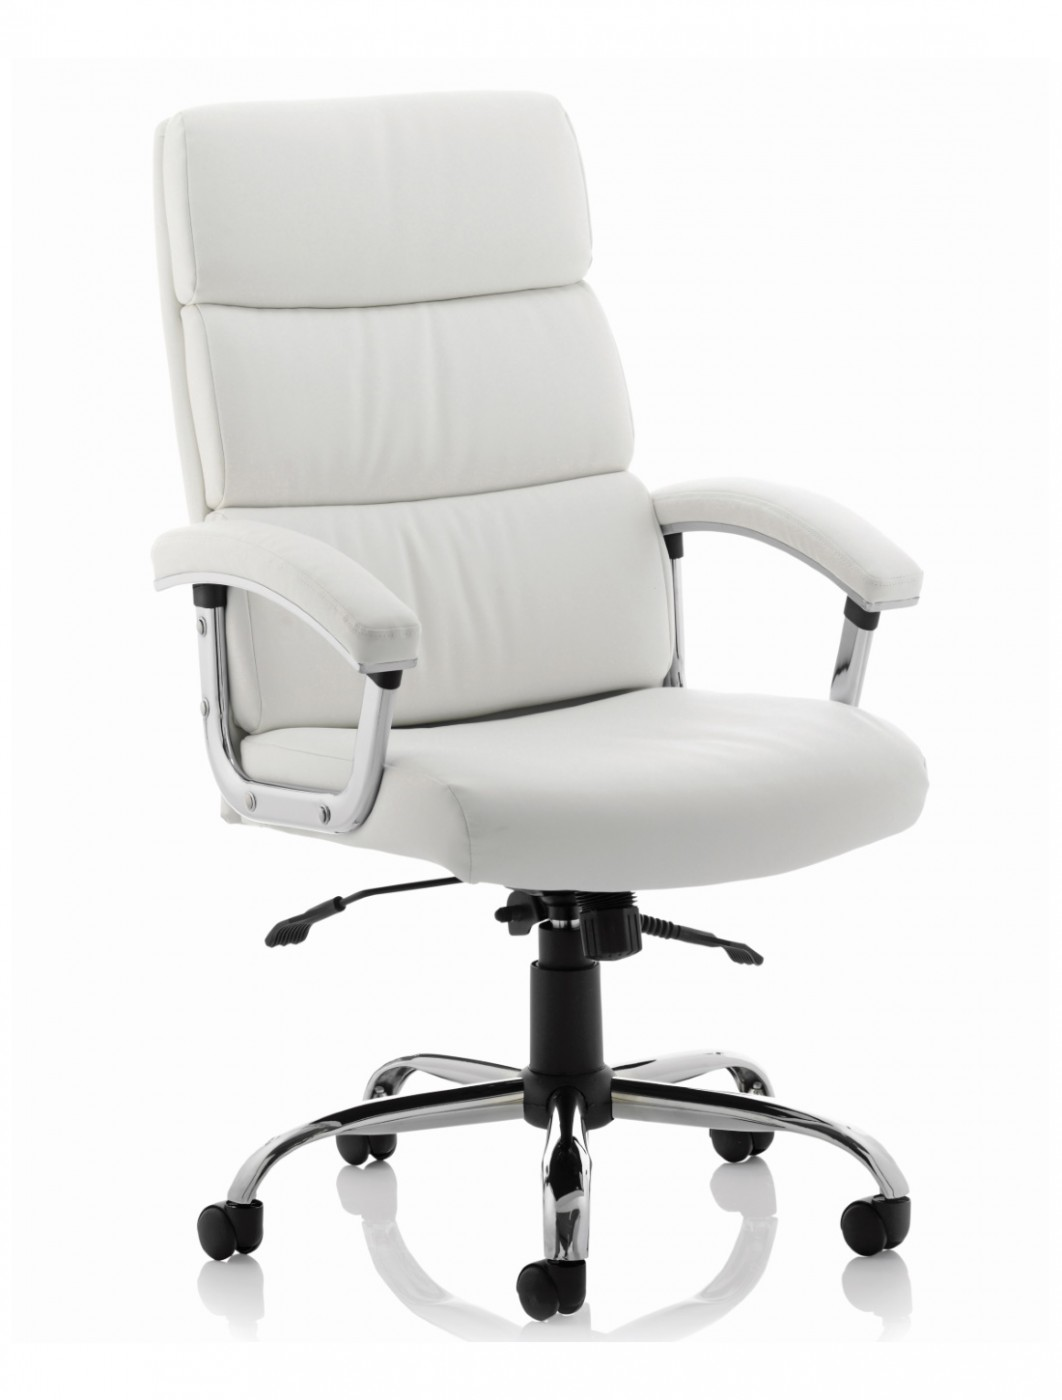 Dynamic Desire Executive Leather Office Chair in White